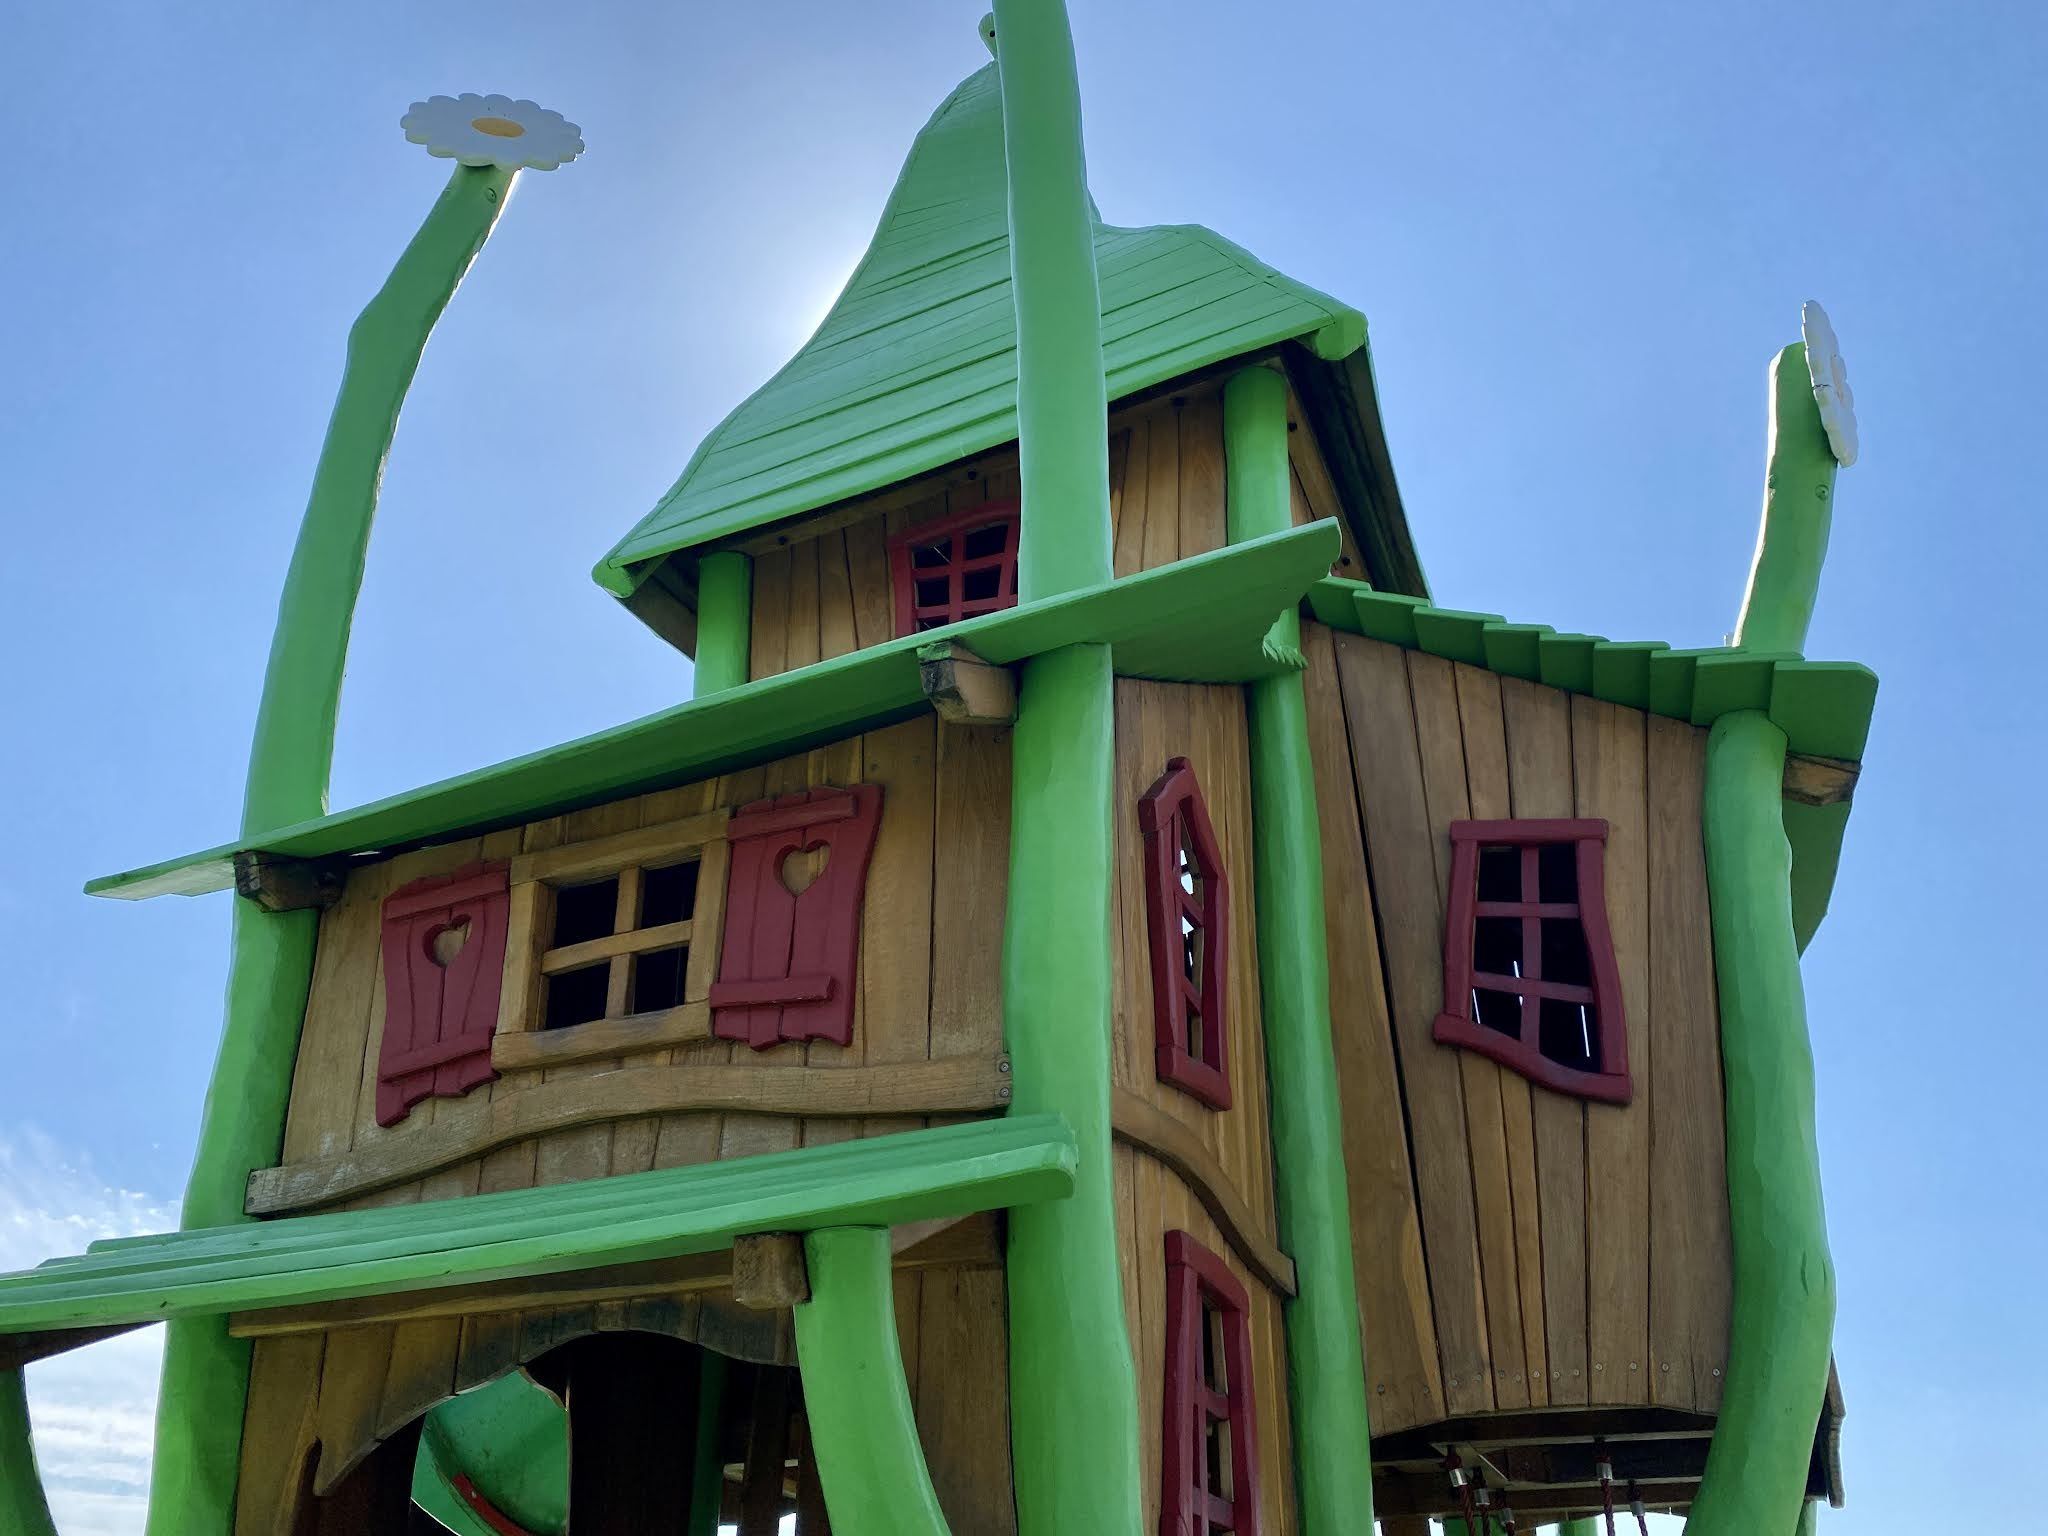 Tree house at the Ice Cream farm